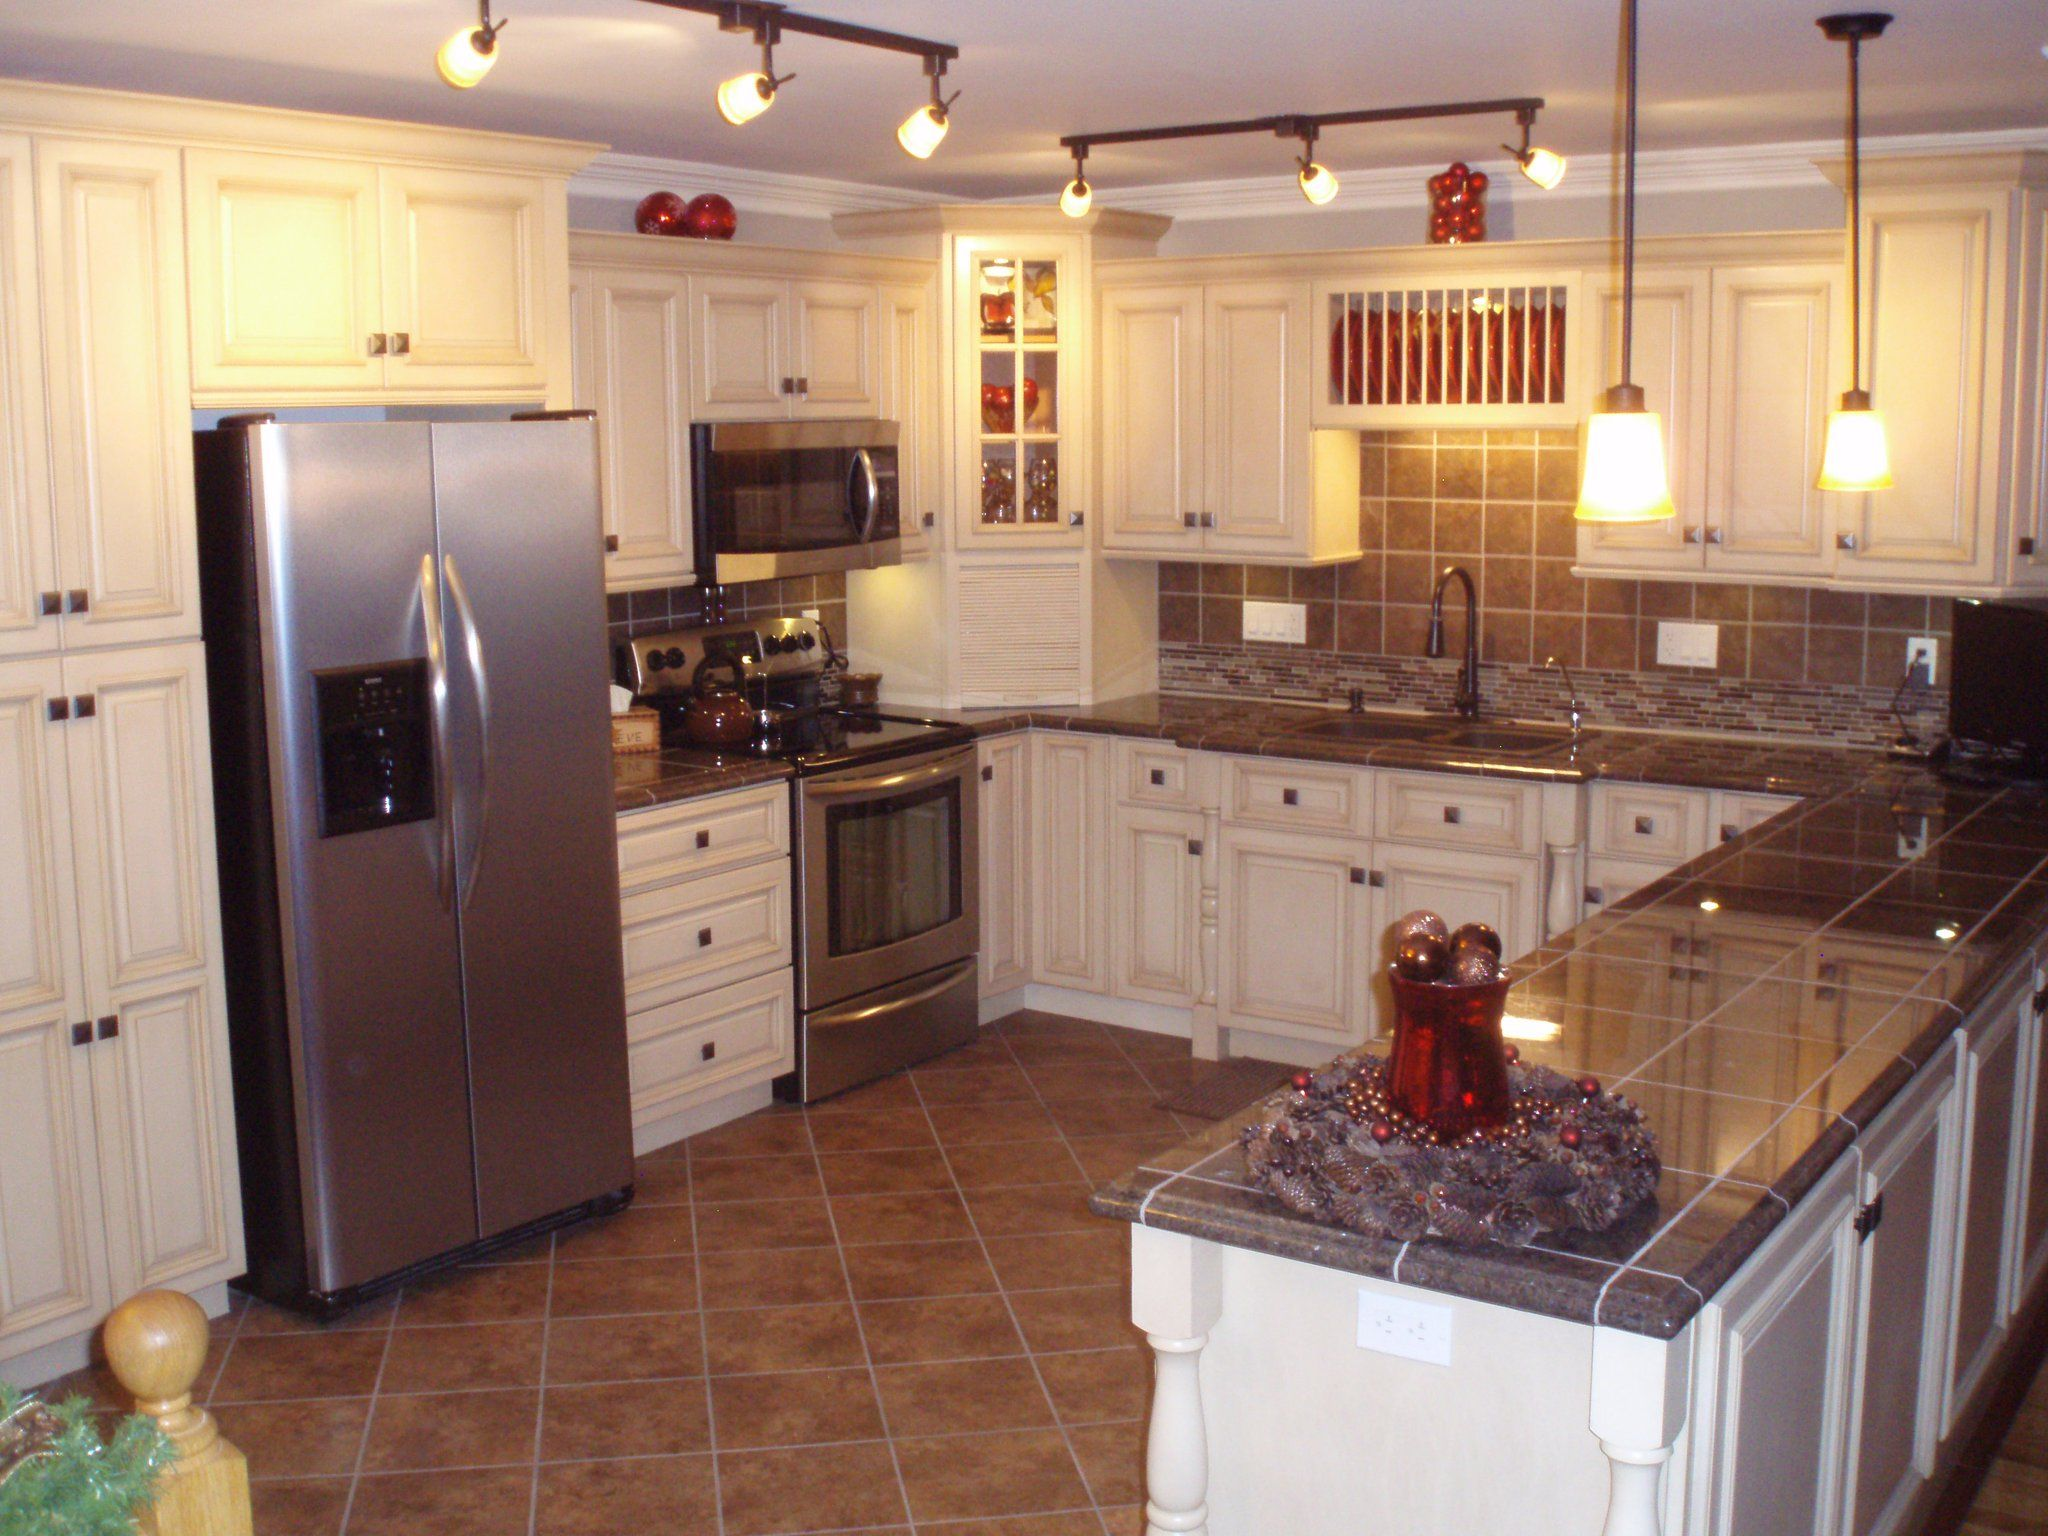 2010 Finalist On Cg Creme Cabinet With Dark Tile Countertops